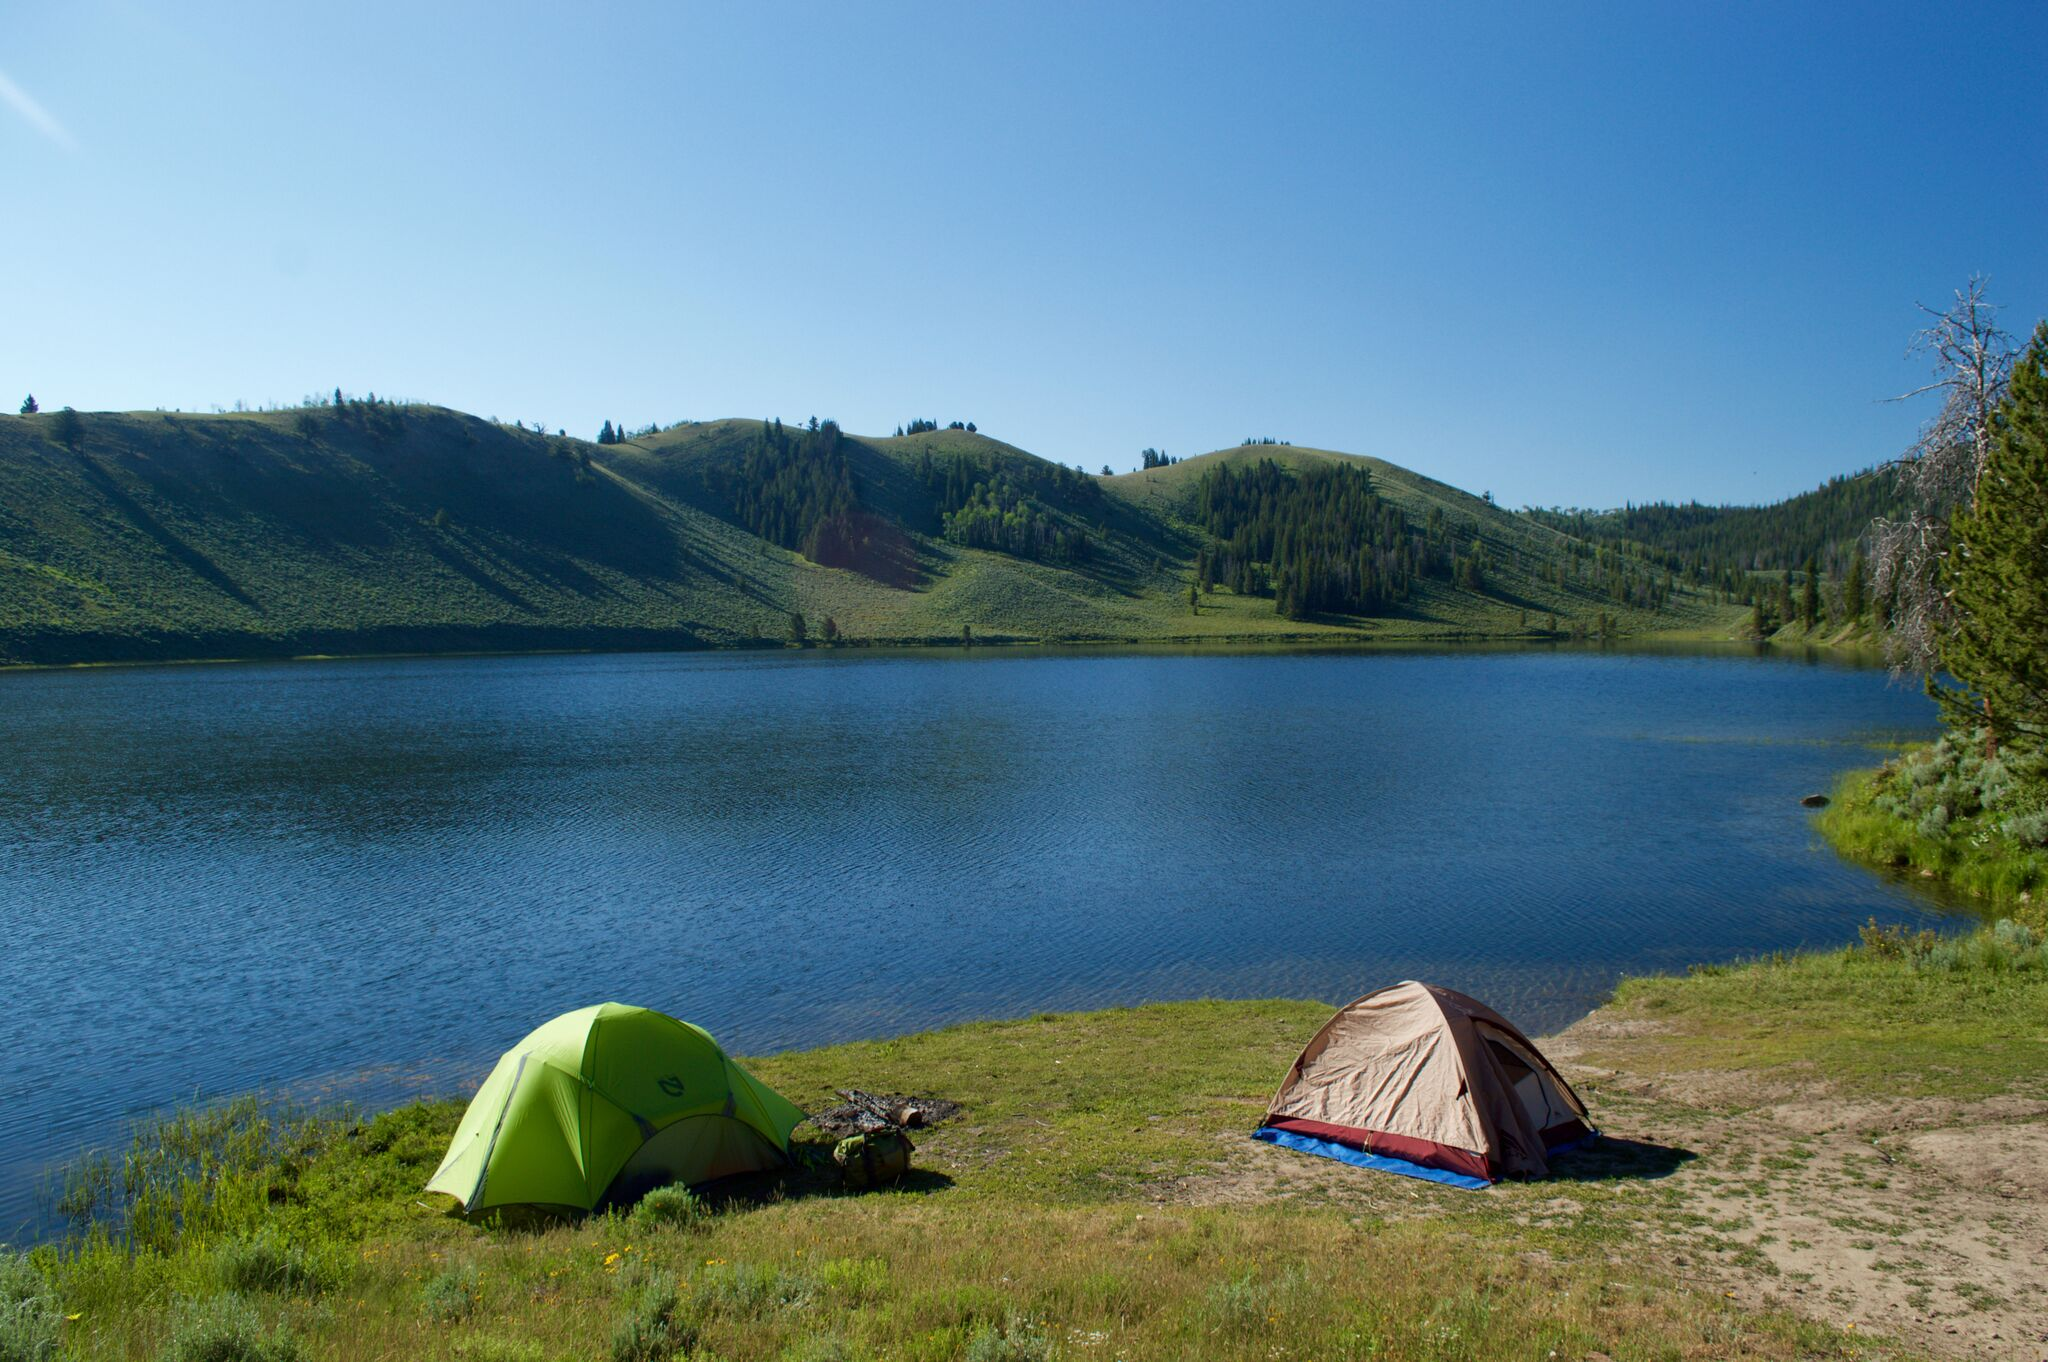 We opted to camp right on the lake in Bridger-Teton.